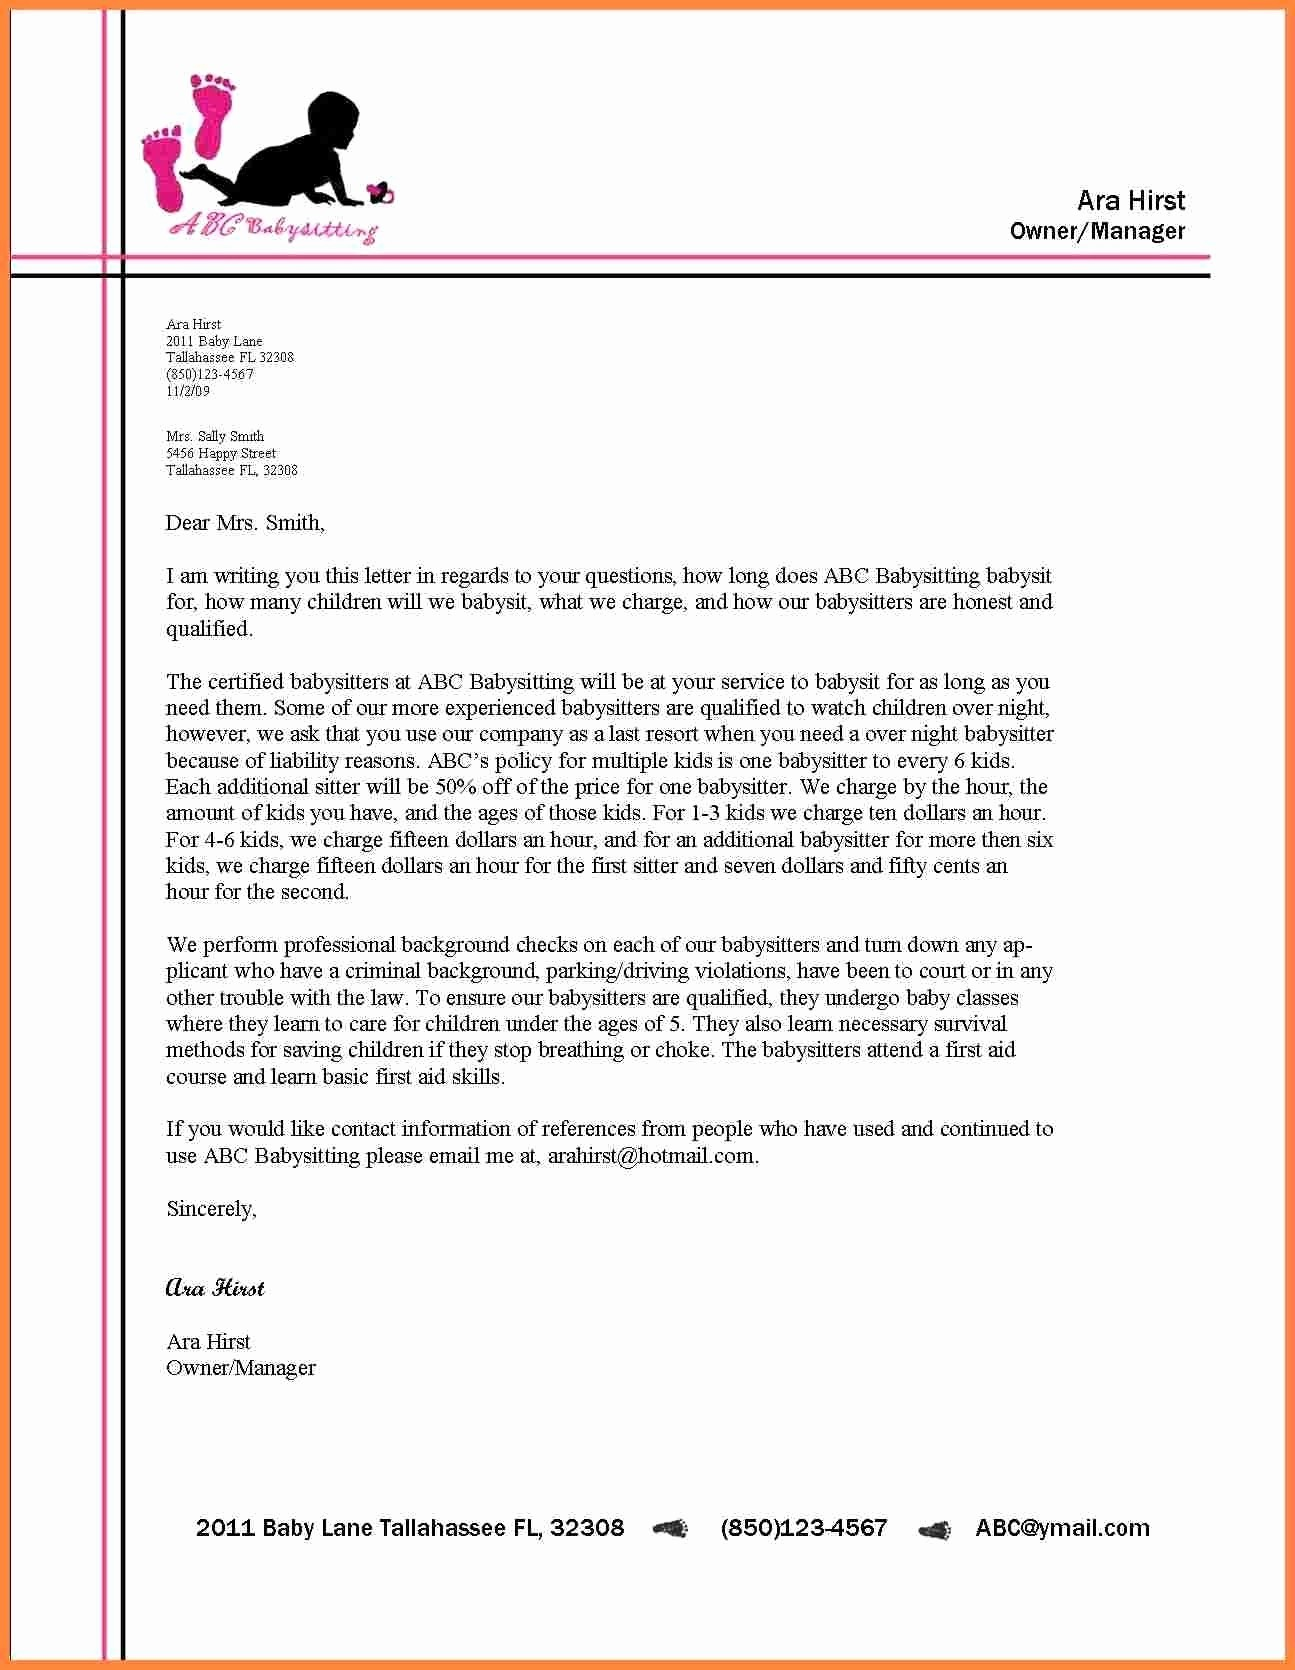 Writing A formal Business Letter Lovely formal Letter format with Letterhead 2018